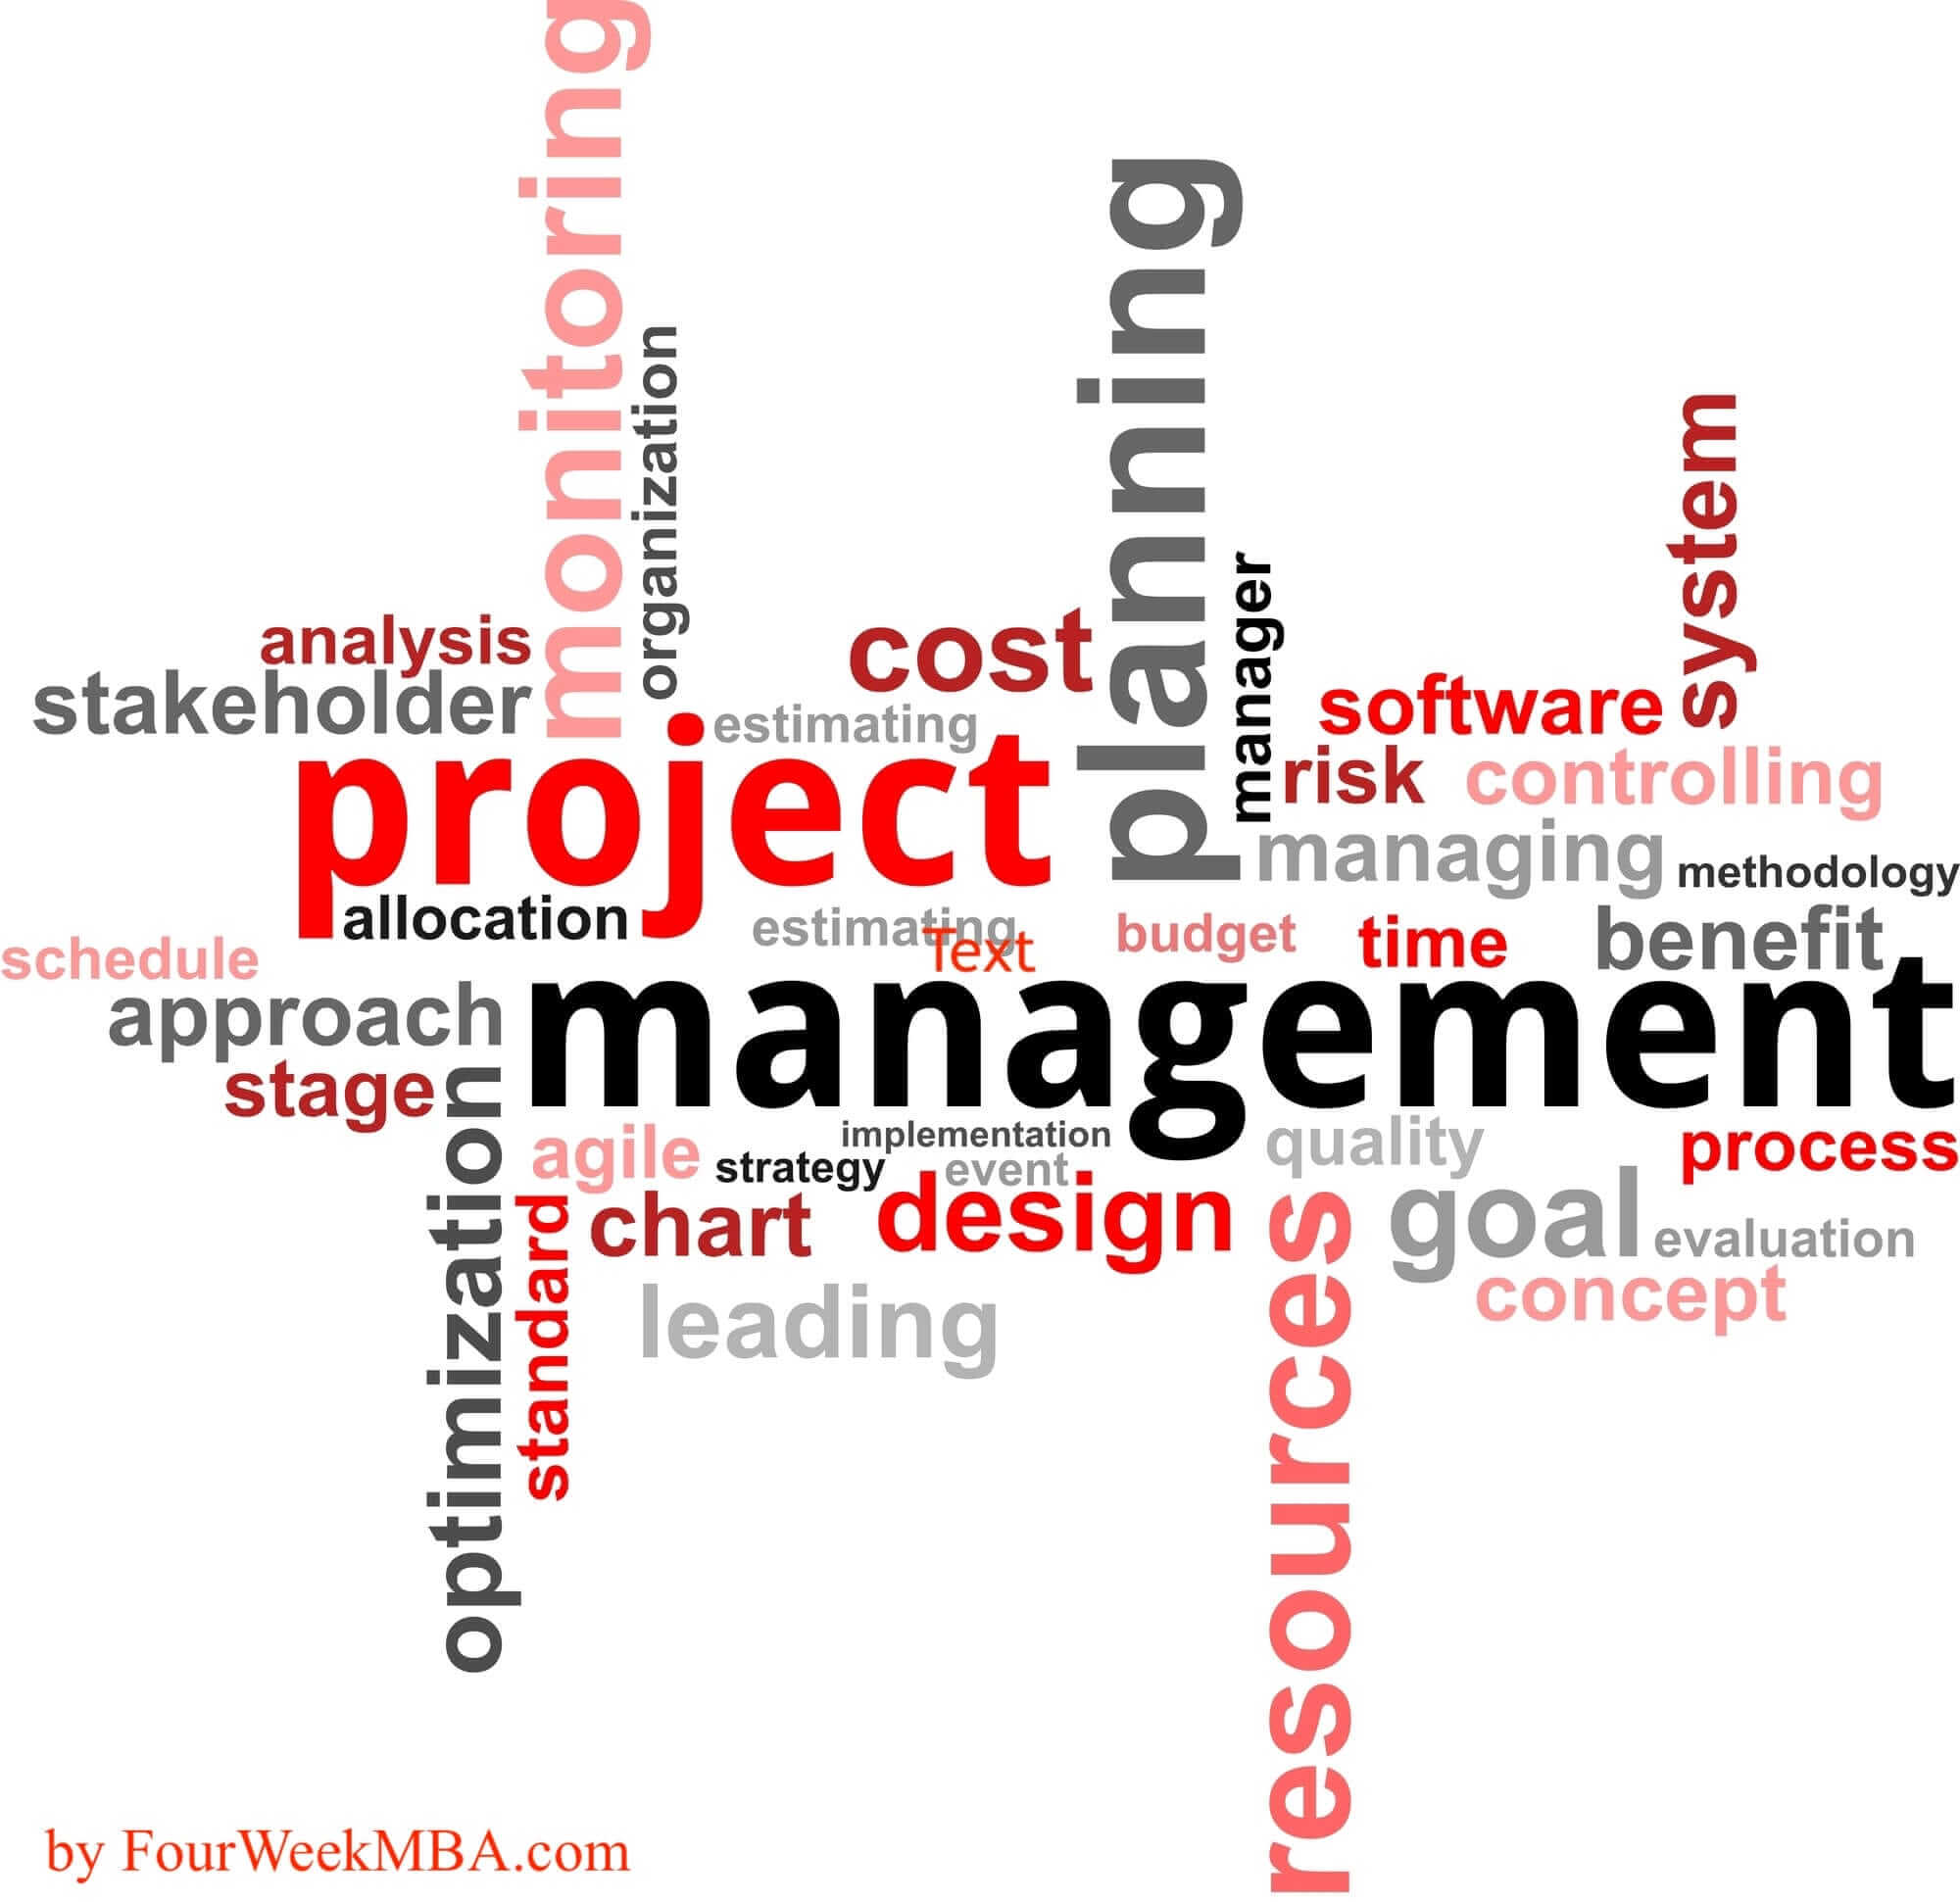 Project Management Process To Make Your Company More Productive